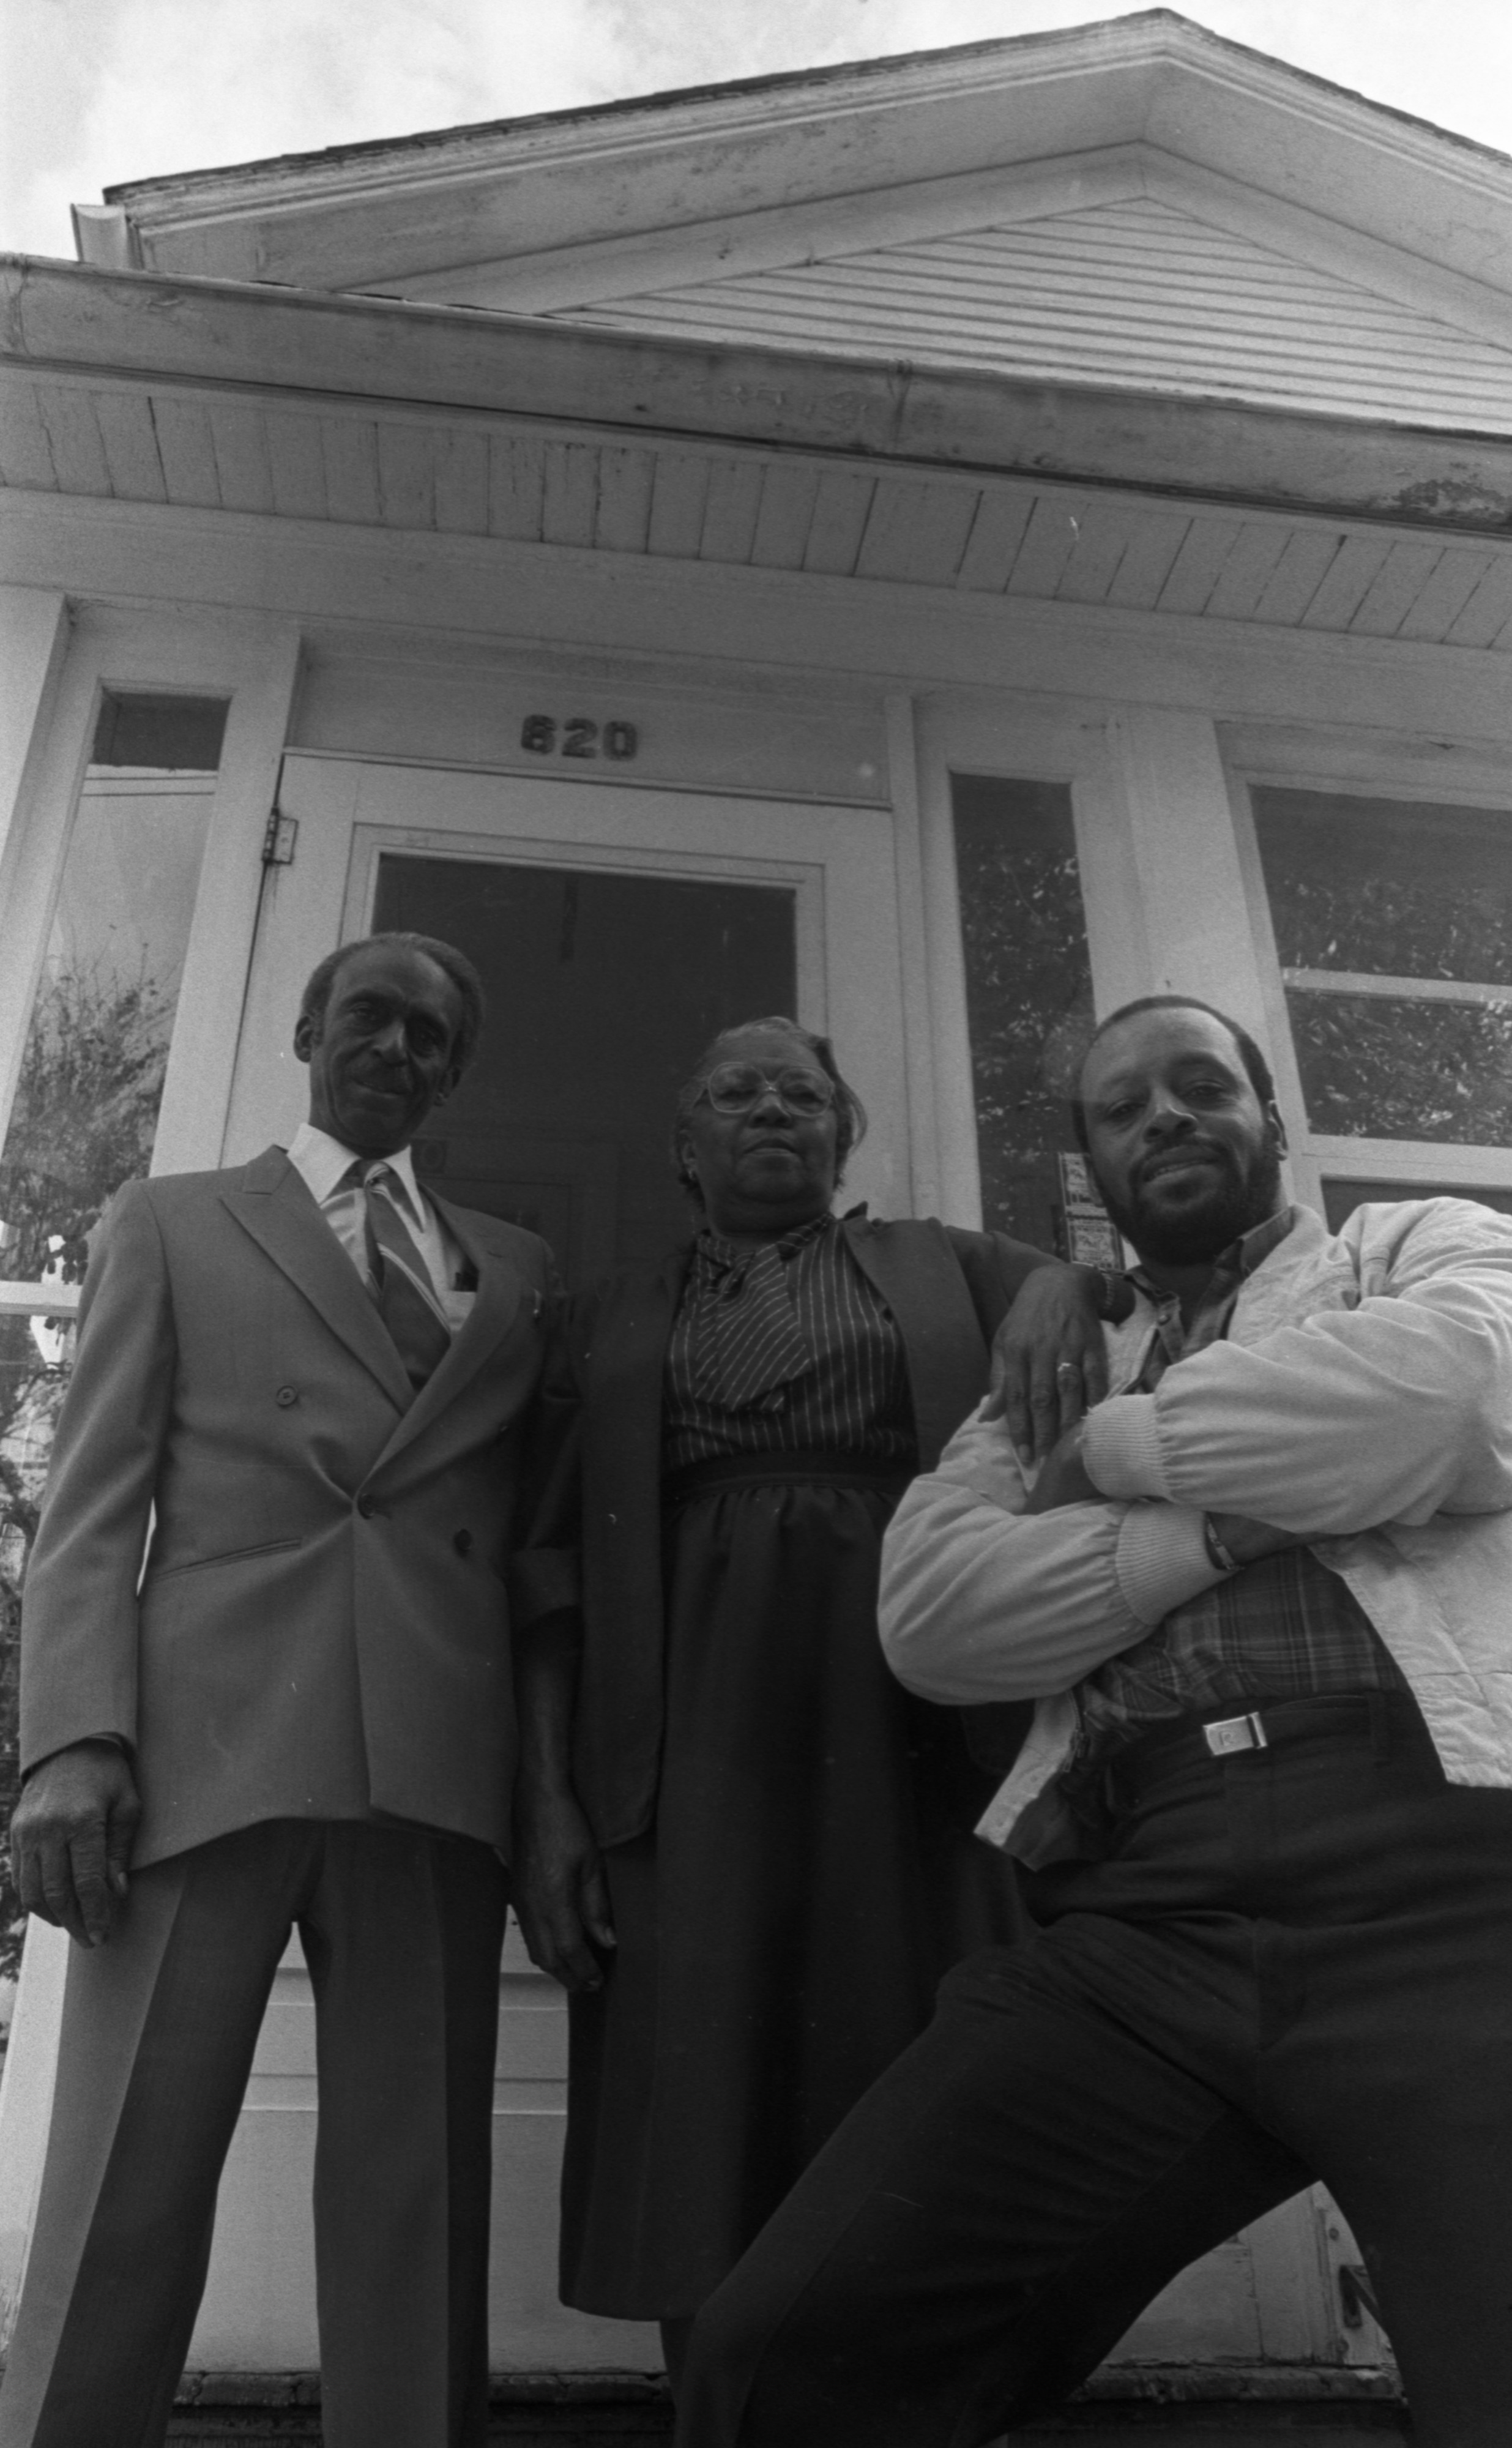 William, Minnie, and their son, Steven Dixon at their home on Fourth Avenue, October 1986 image